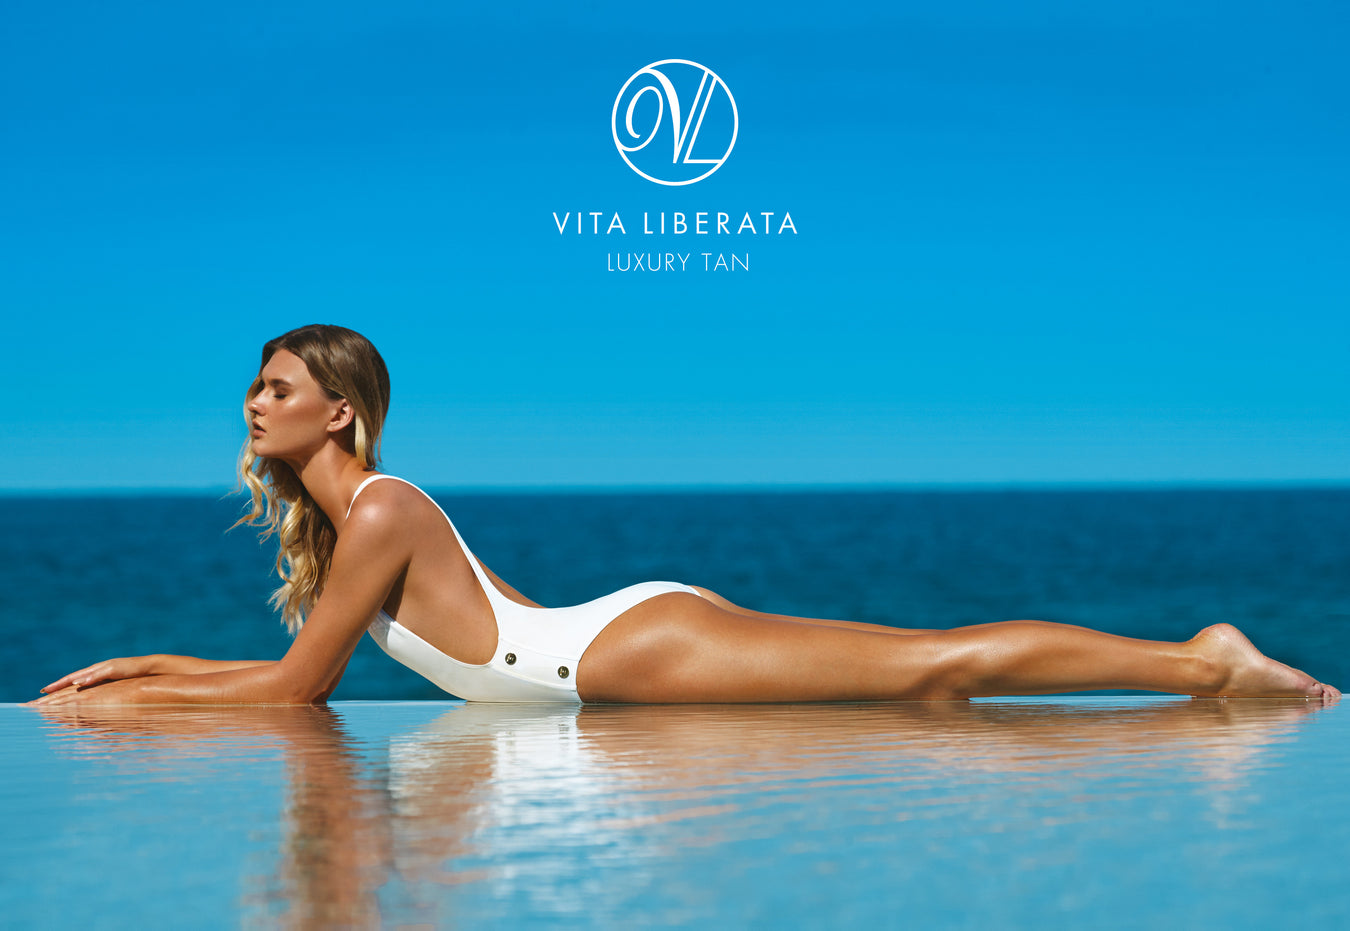 VITA LIBERATA - LUXURY TAN